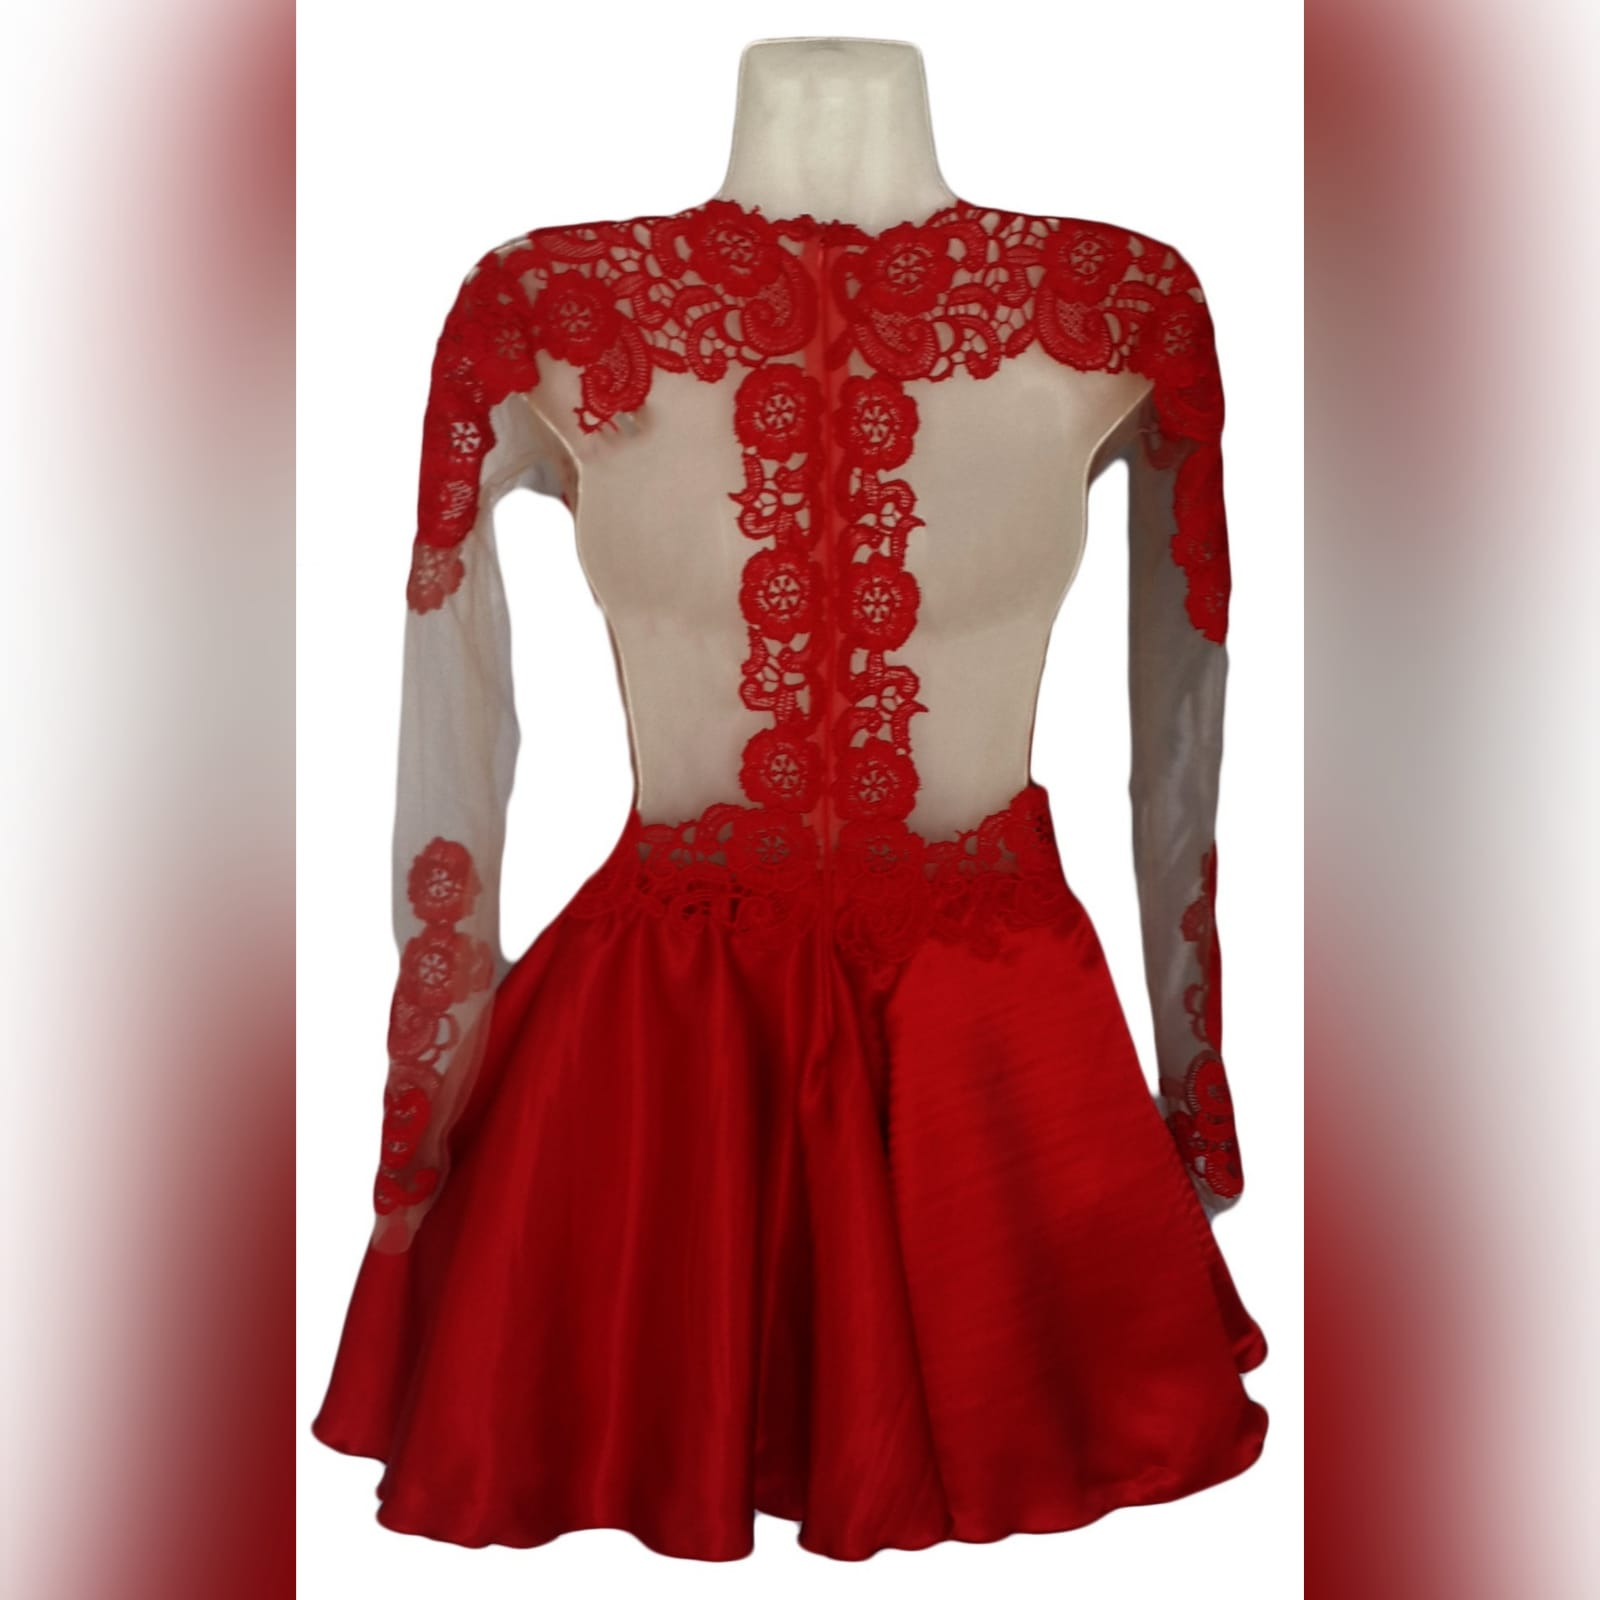 21st birthday party short evening dress 3 short red lace evening dress for a 21st birthday party. Dress with an illusion back detailed with lace, neckline and sleeves, bodice fully laced